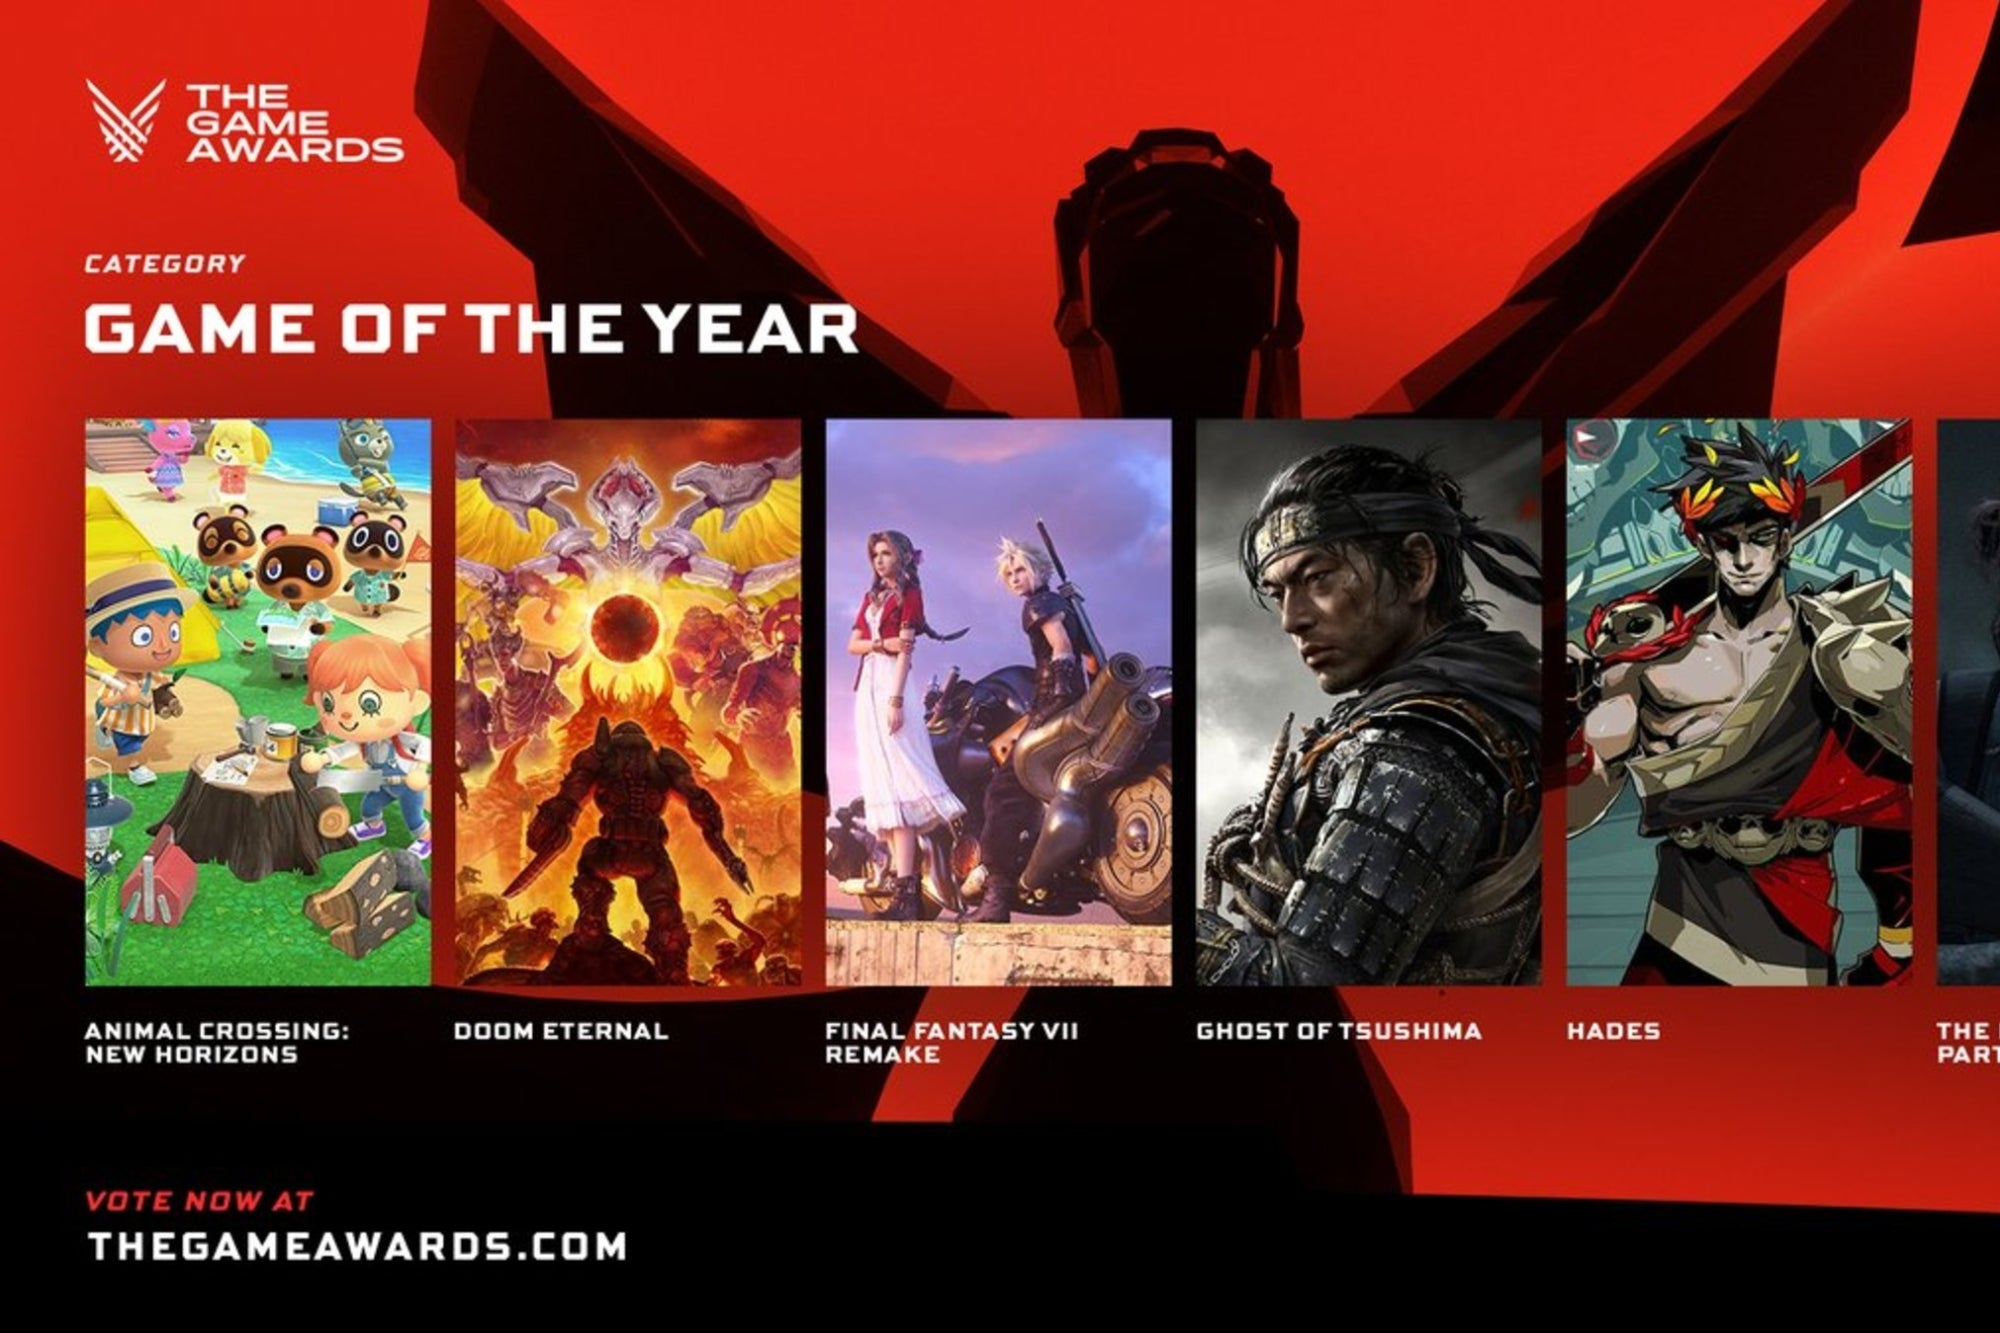 The 2020 Game Awards are today! Meet the nominees for GOTY and other categories